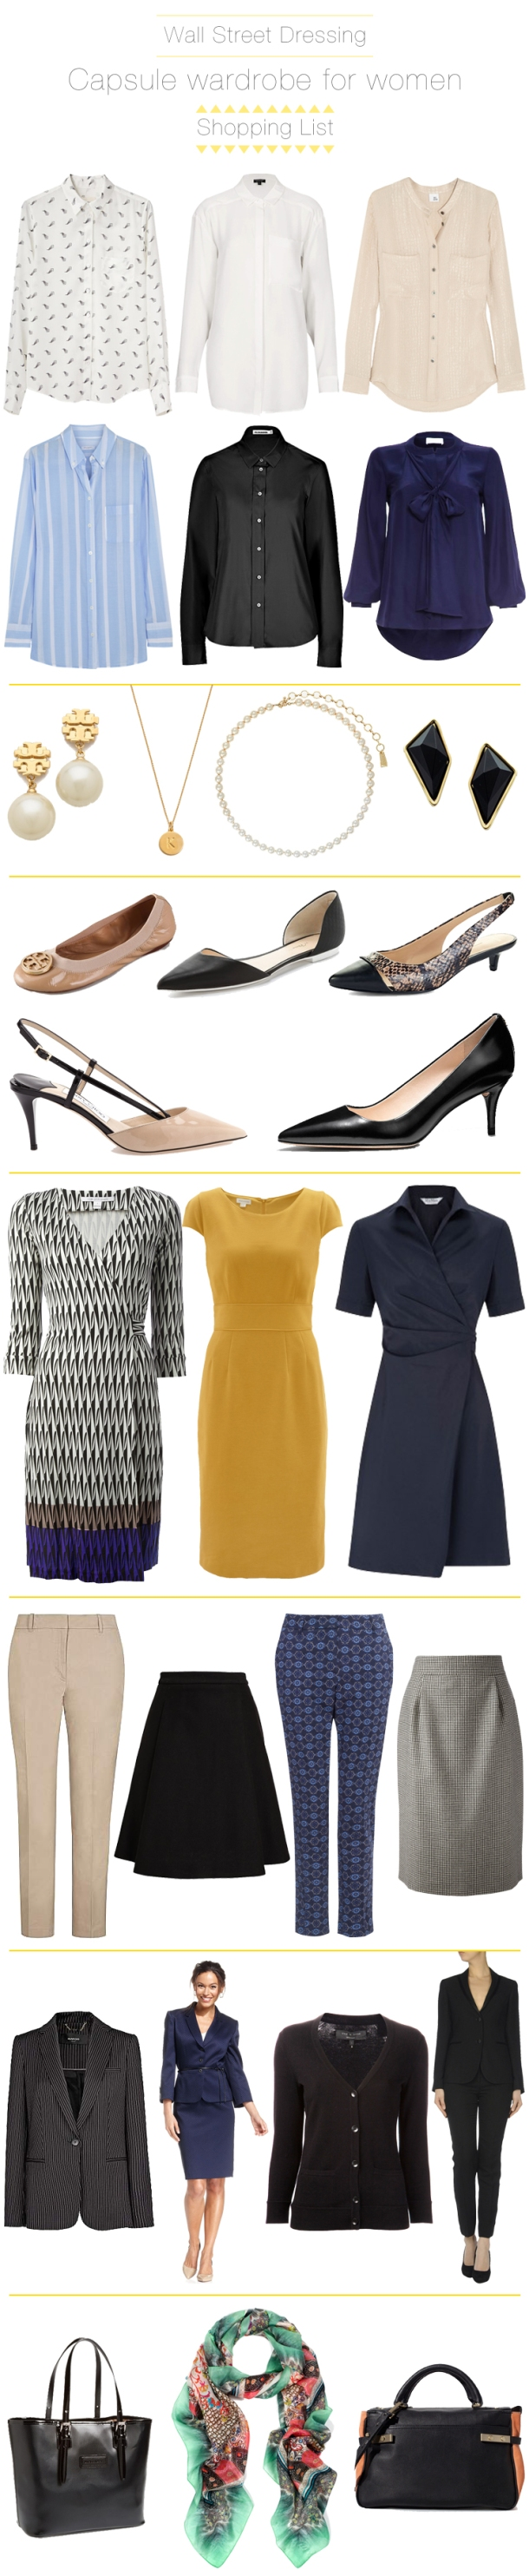 capsule-wardrobe-for-wall-street-women